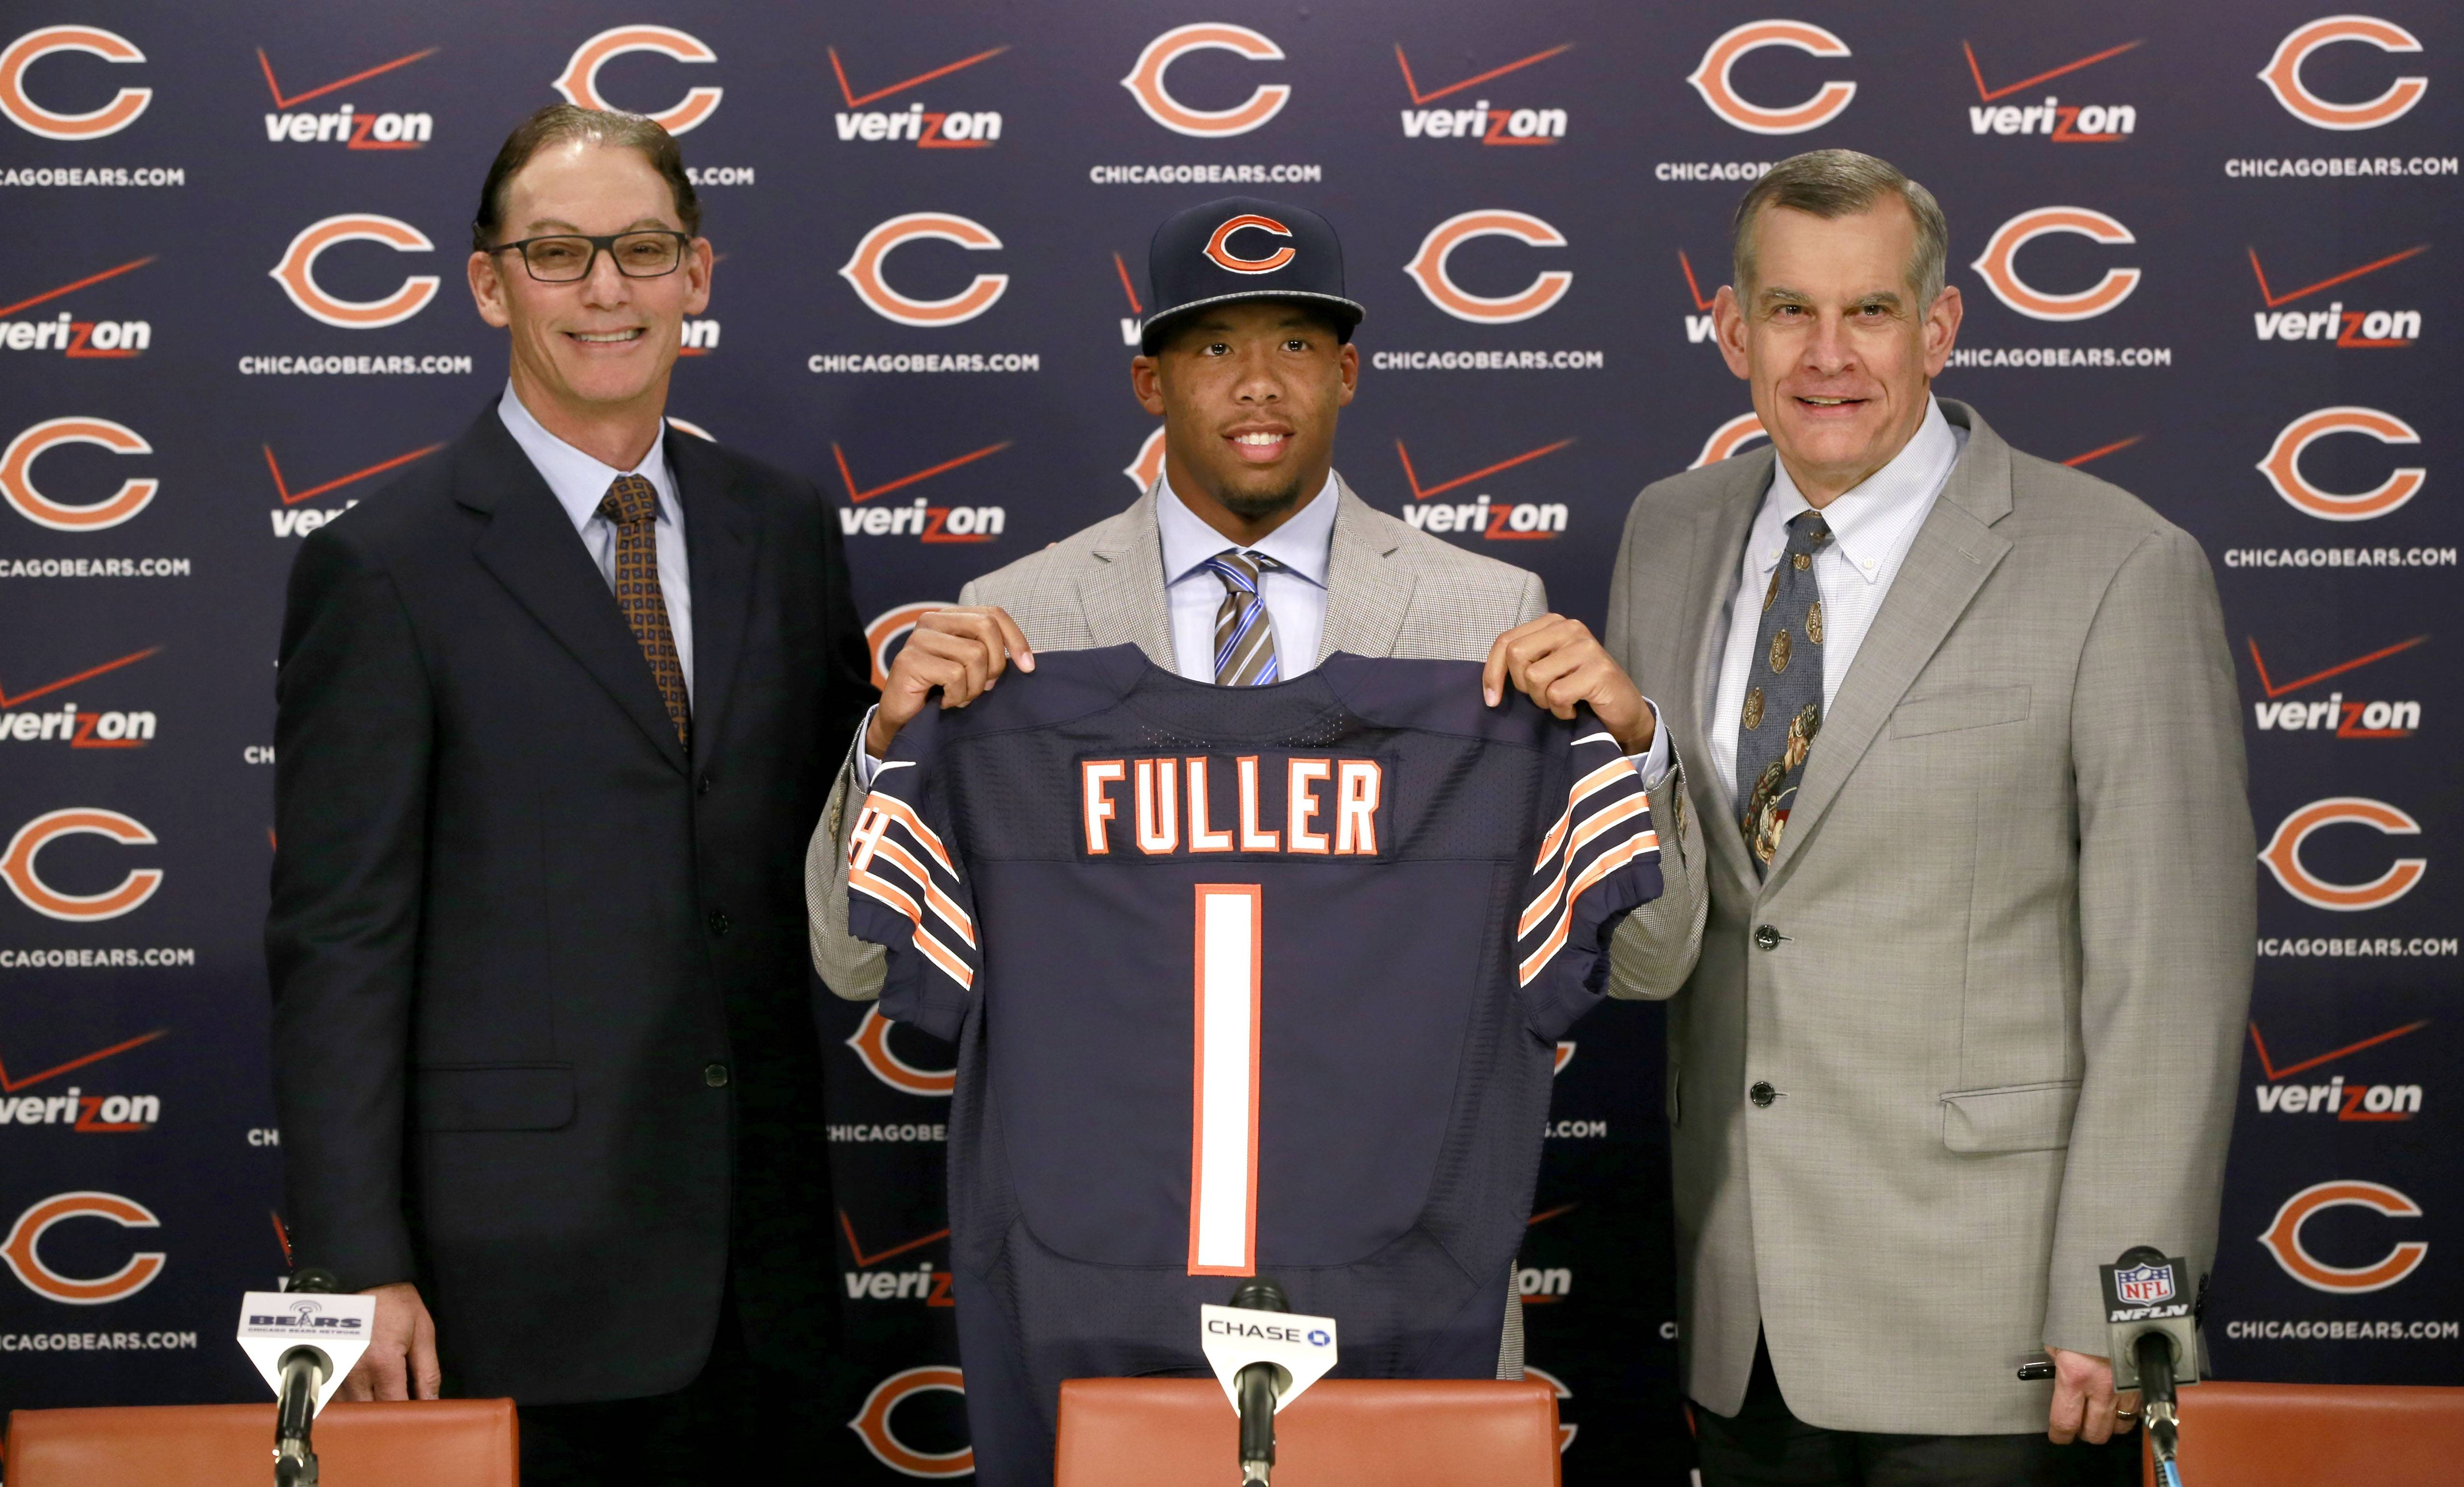 Chicago Bears head coach Marc Trestman, left, and general manager Phil Emery, right, introduce the team's first-round draft pick, Virginia Tech cornerback Kyle Fuller, during an NFL football news conference Friday, May 9, 2014, in Lake Forest, Ill.